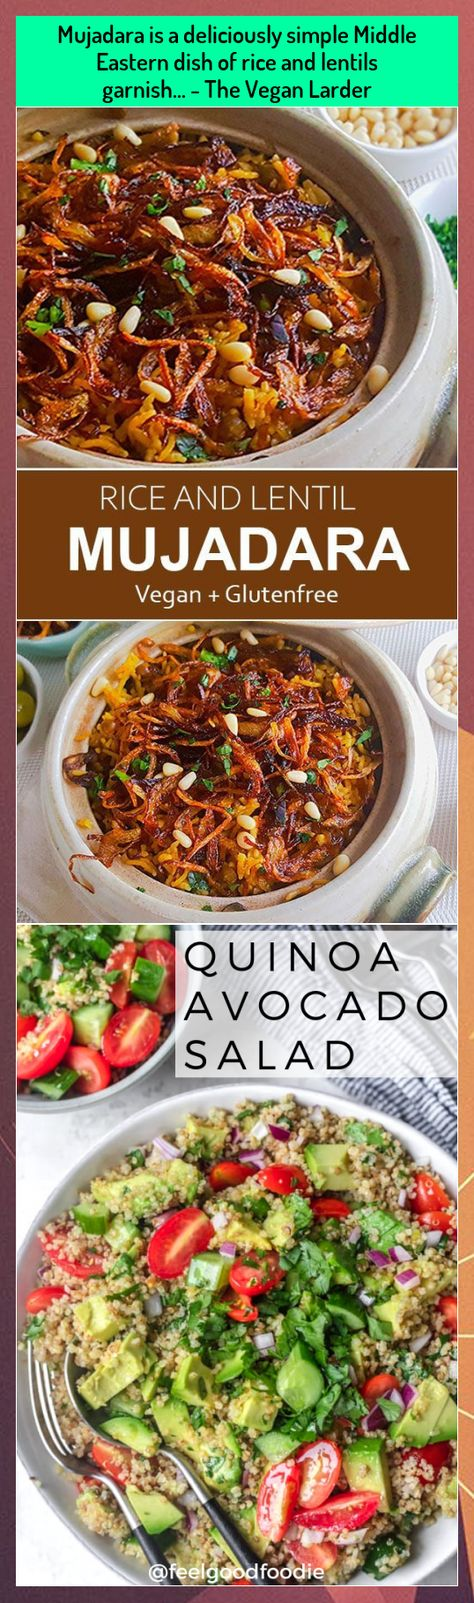 Mujadara Is A Deliciously Simple Middle Eastern Dish Of Rice And Lentils Garnish The Vegan Larder In 2020 Middle Eastern Dishes Vegan Dinner Recipes Lentils